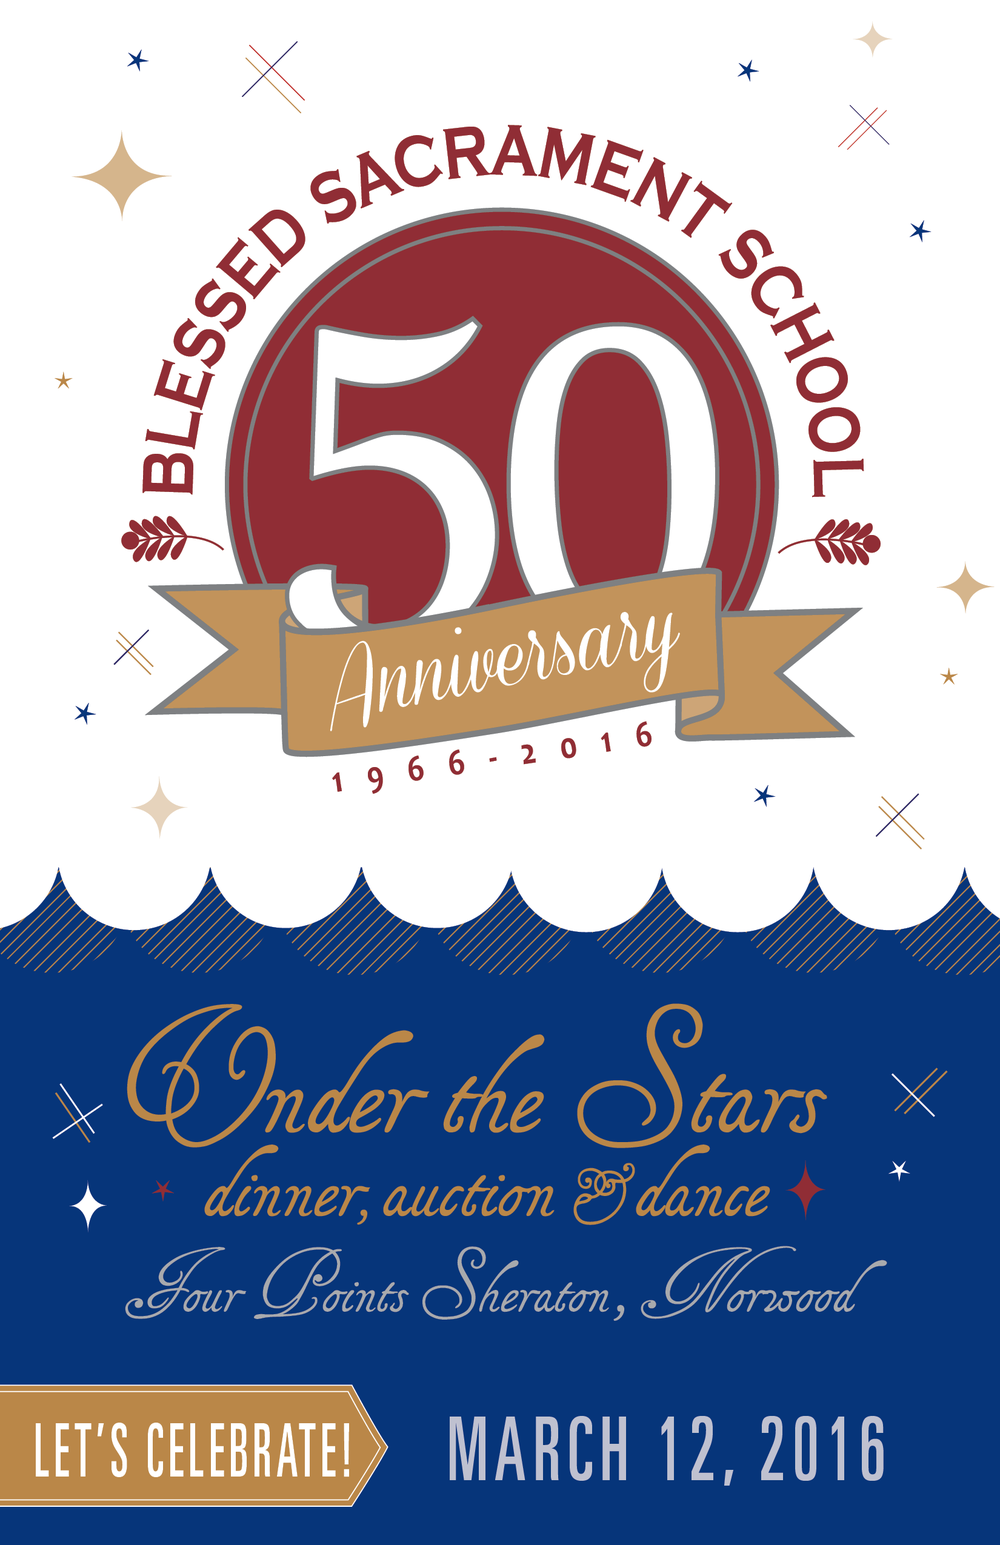 BSS_Under_the_Stars_2016_INVITE.png